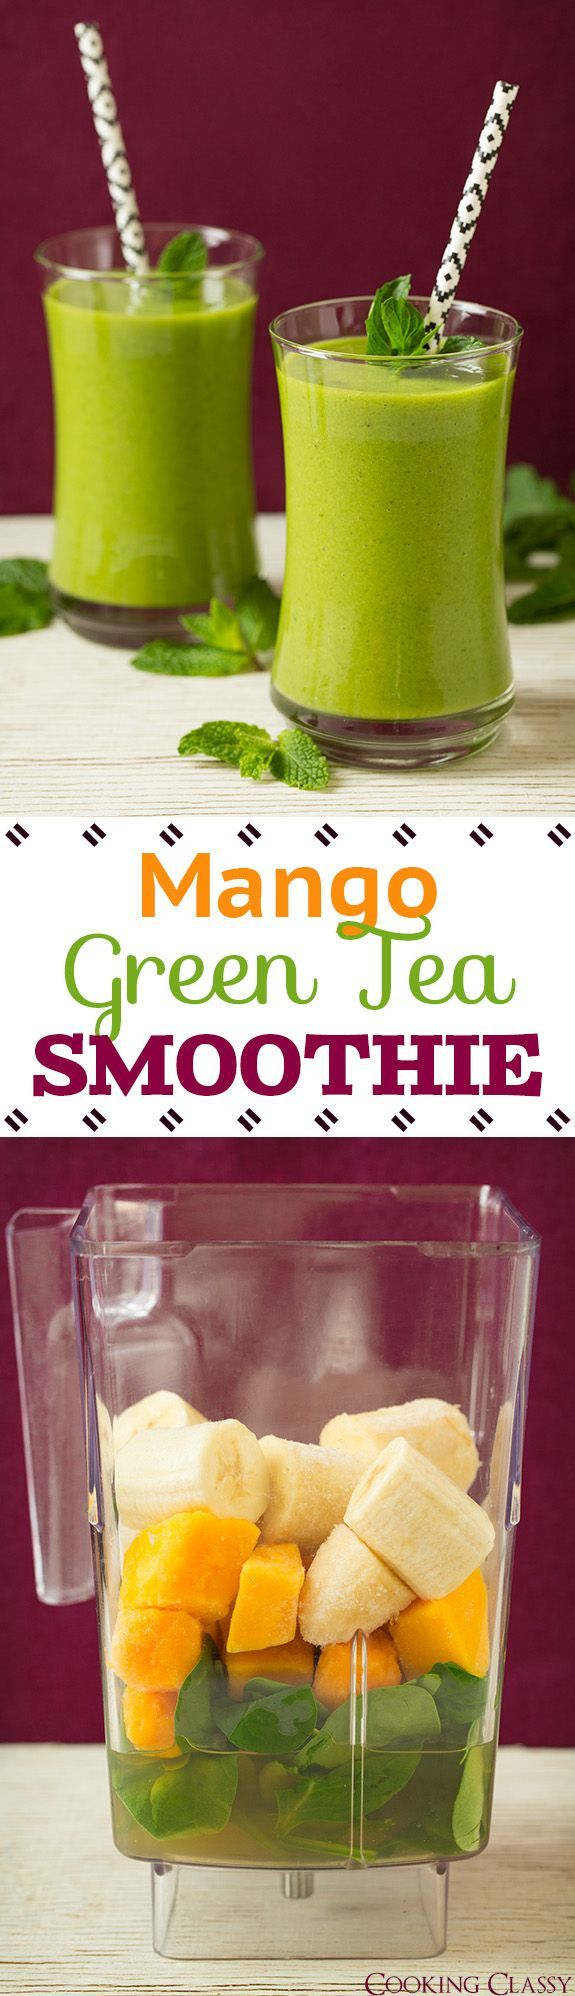 Mango Green Tea Smoothie - vibrant, refreshing and so good!! With the benefits of green tea I'll be making this one all the time!